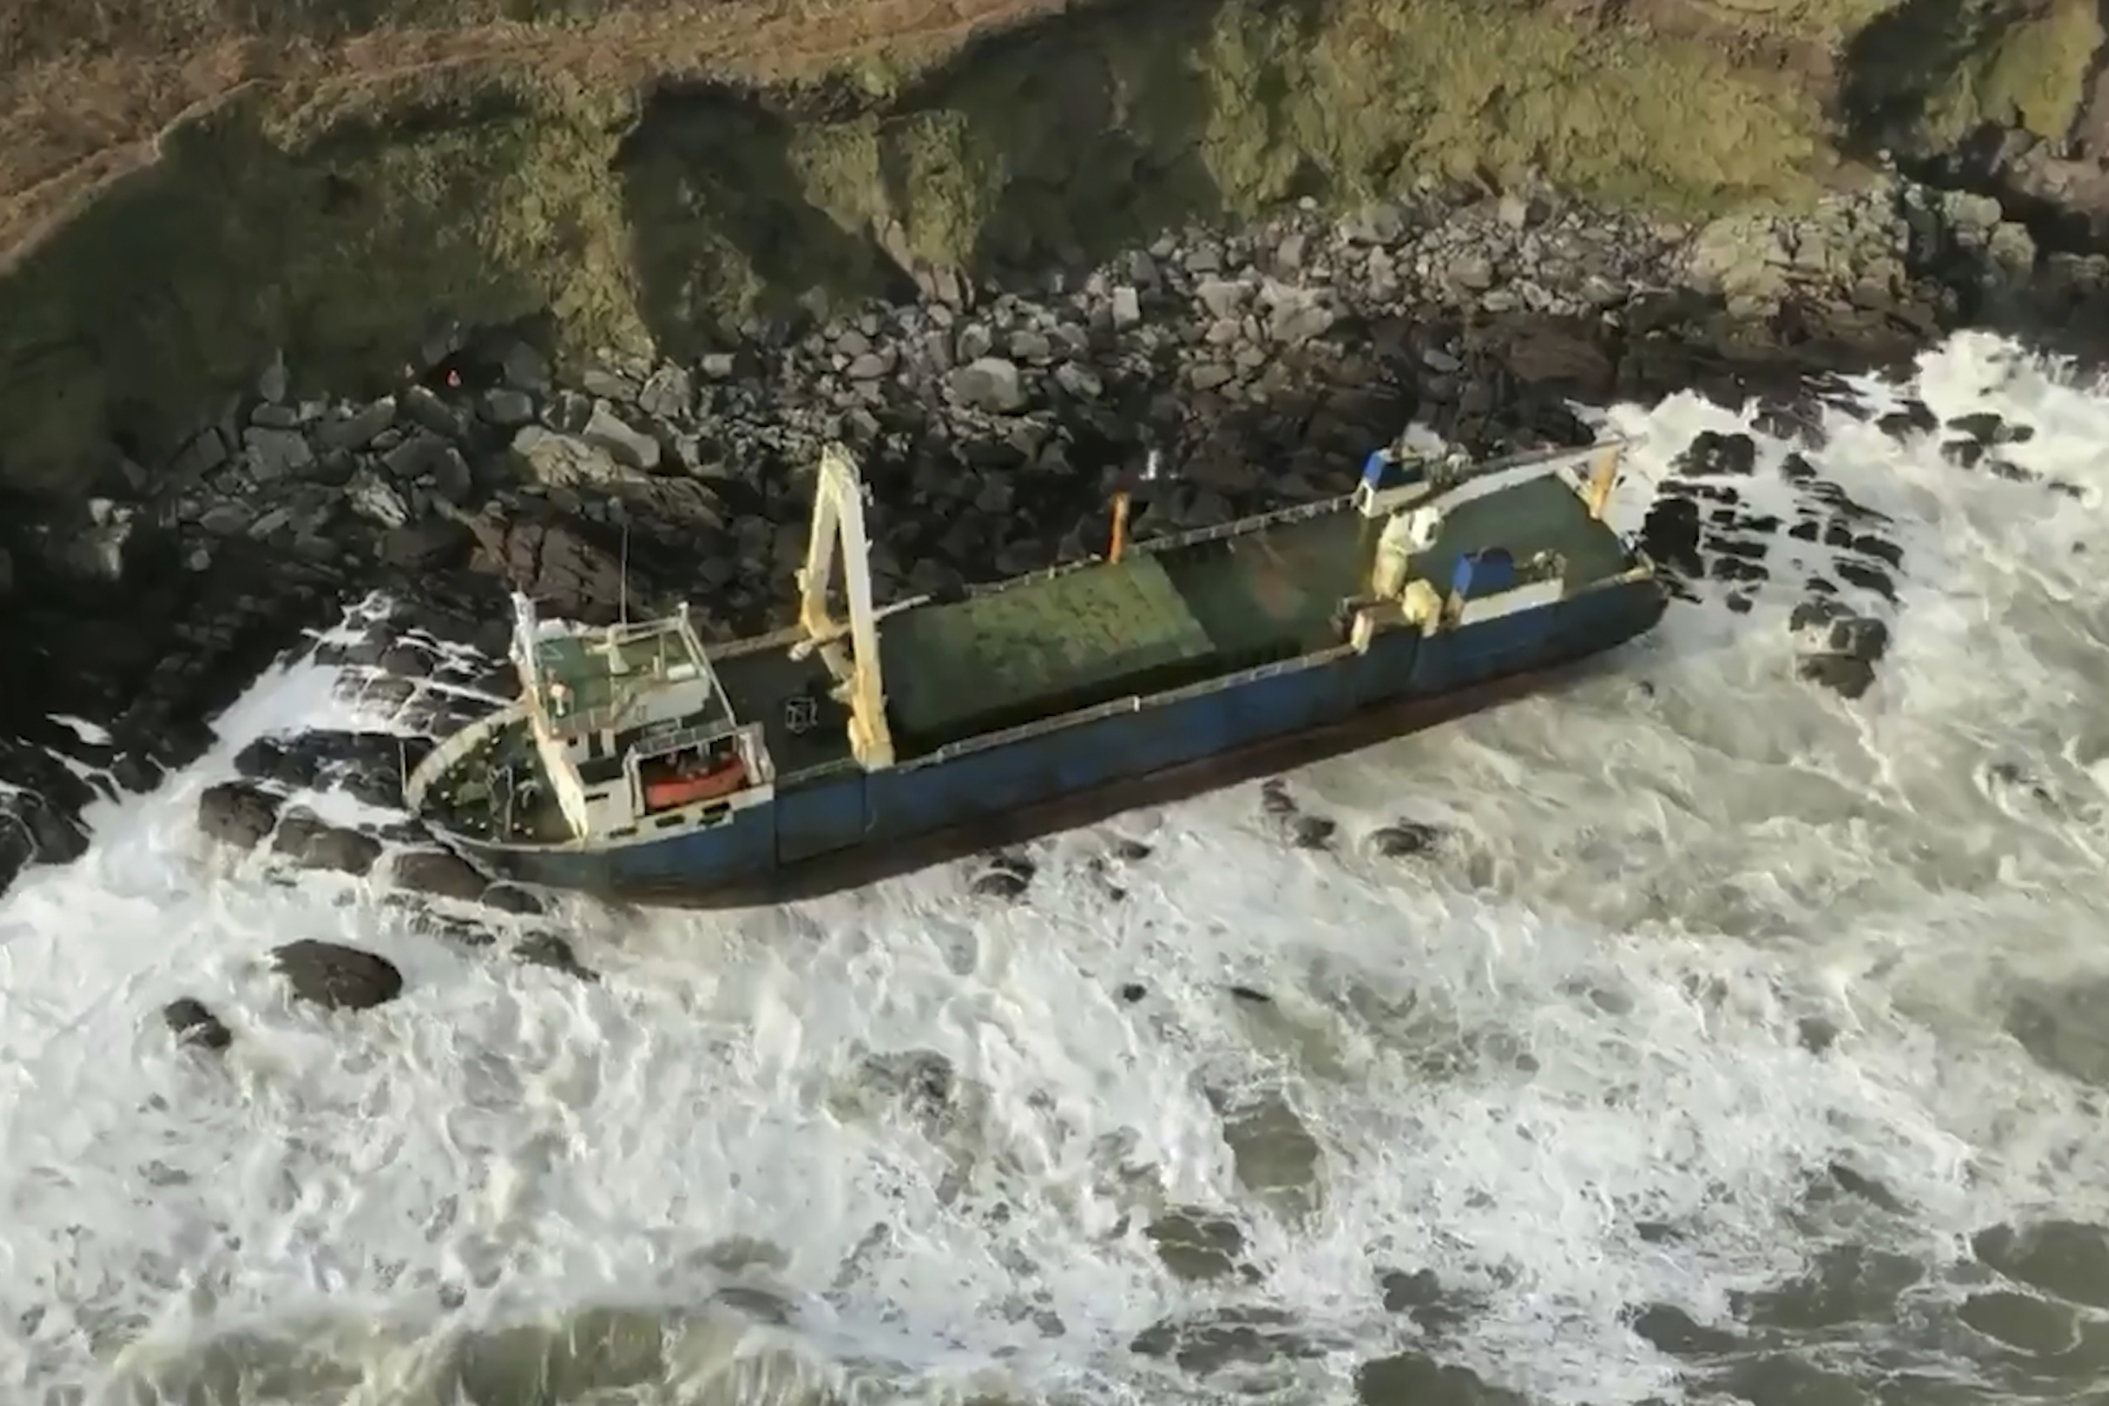 Фото: Irish Coast Guard via AP